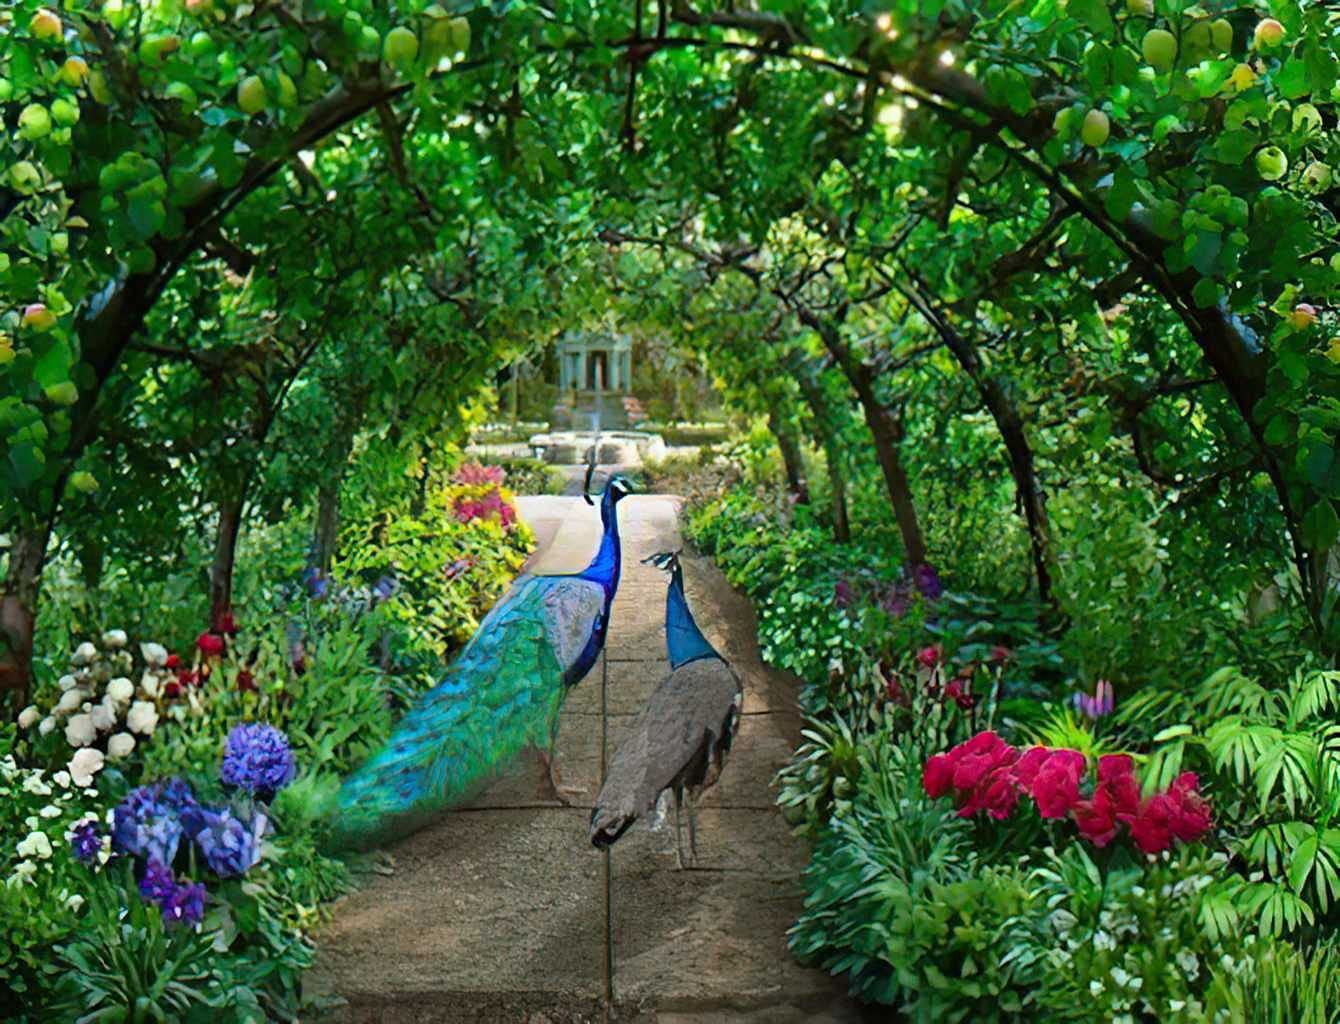 Jigsaw Puzzle 300 Pieces Puzzles for Adults Kids Mural A Couple of Peacocks Walks Through Green Garden Full Irises and Hydrangeas Wooden Large Piece Games Friend Adult Ages 8-10 15x20 Inch